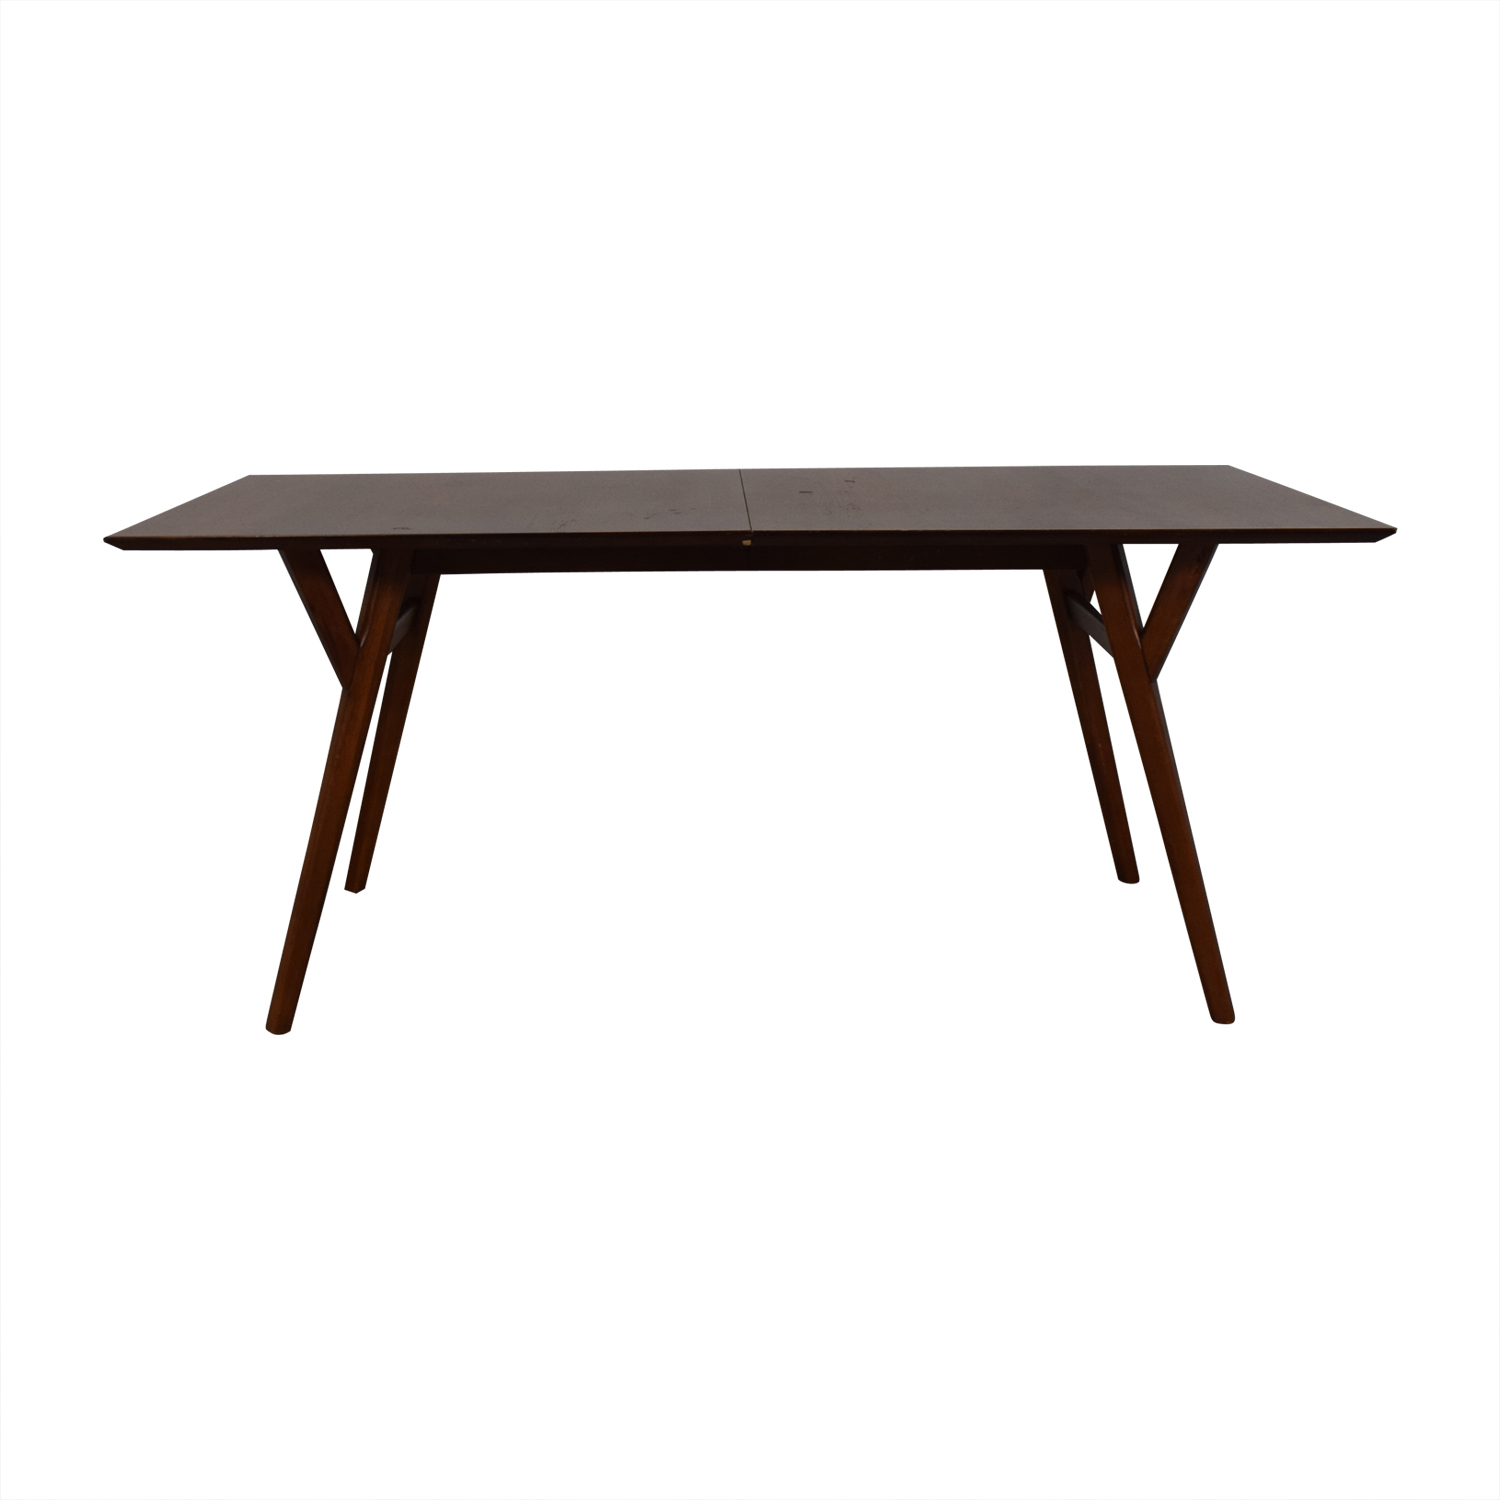 West Elm West Elm Extendable Dining Table second hand